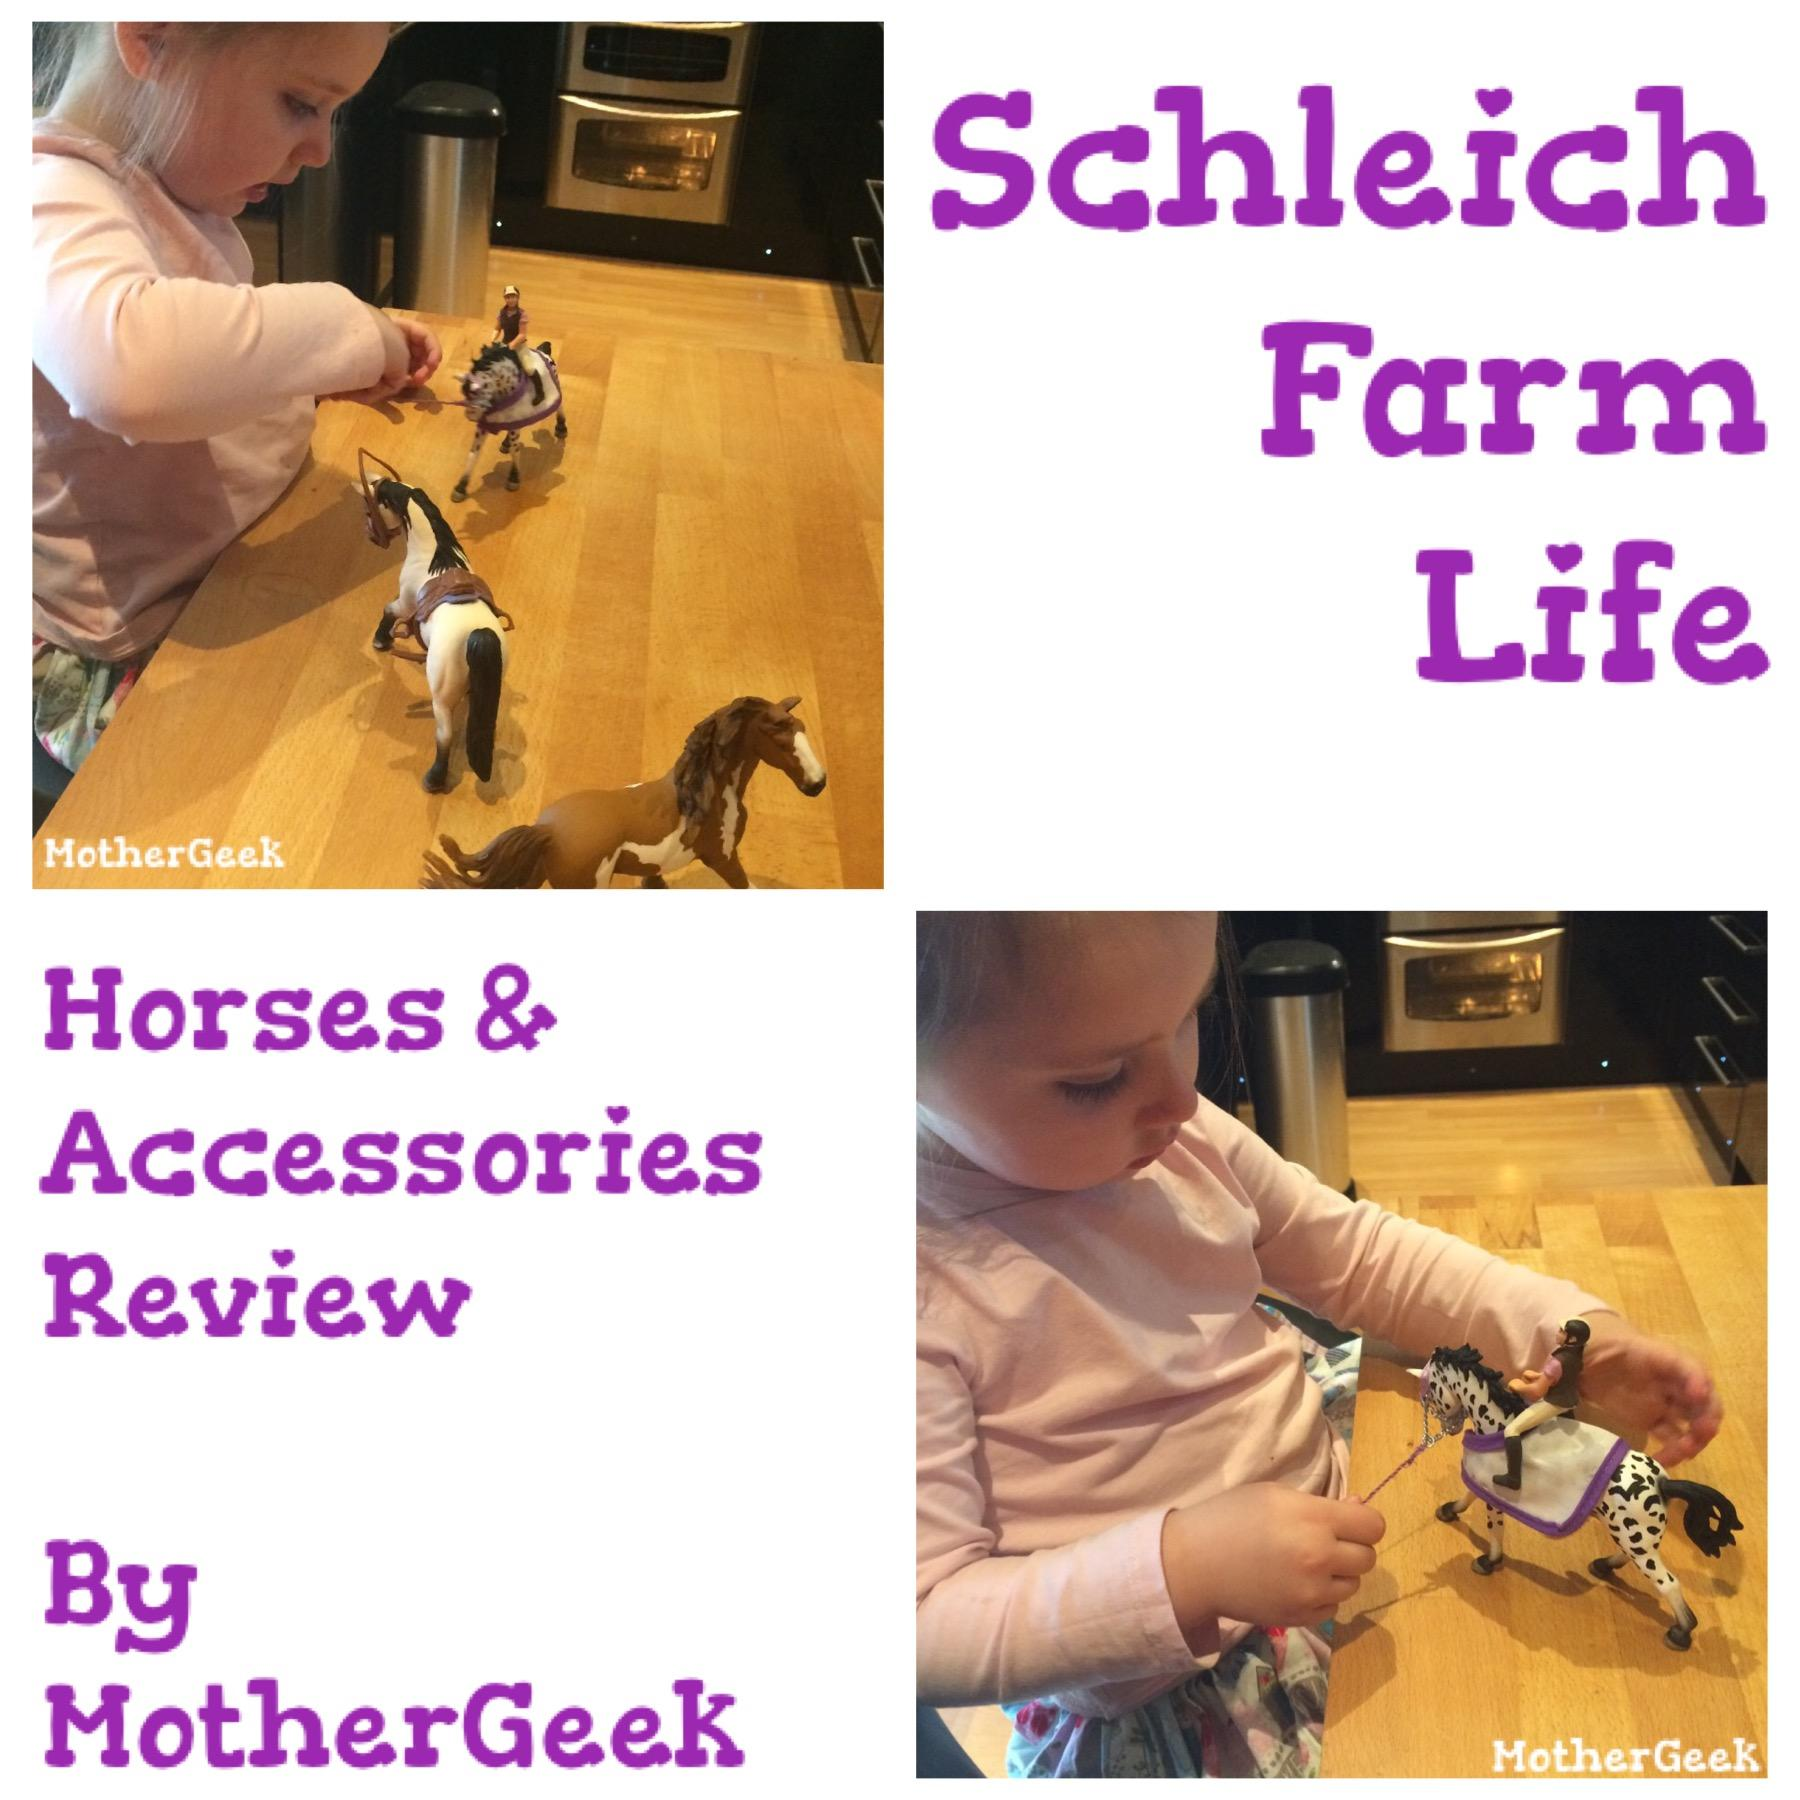 Child playing with Schleich Farm Life Horses